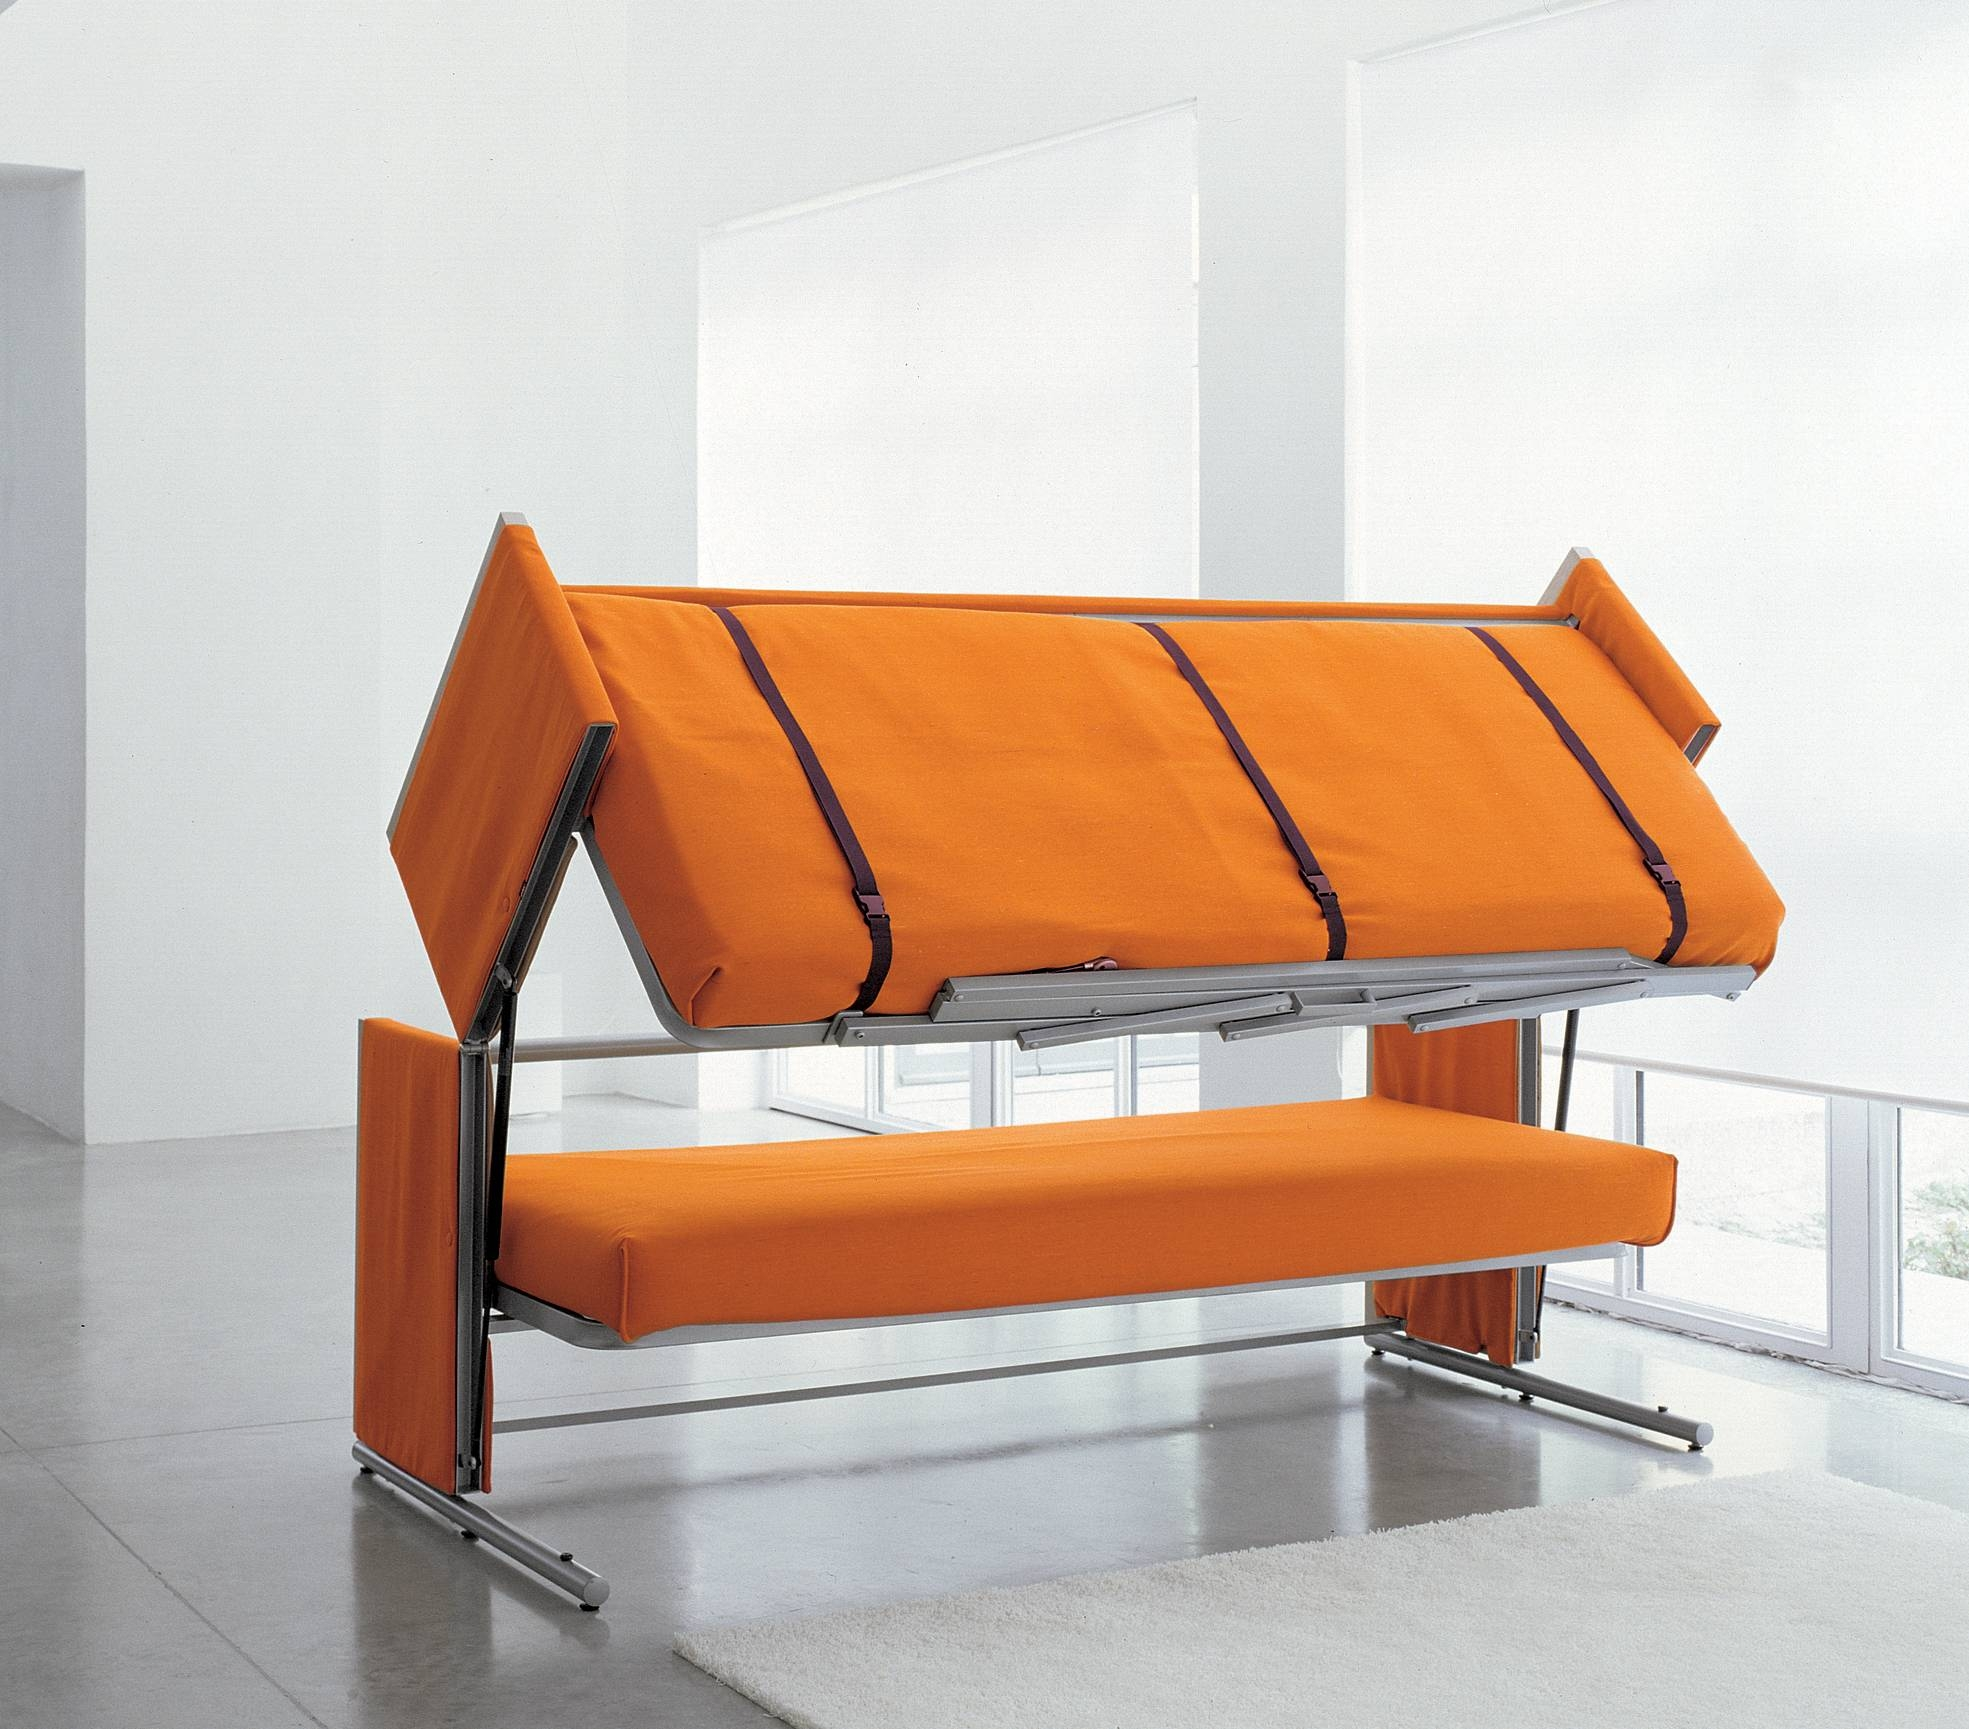 Doc A Sofa Bed That Converts In To A Bunk Bed In Two Secounds inside Sofa Bunk Beds (Image 9 of 30)